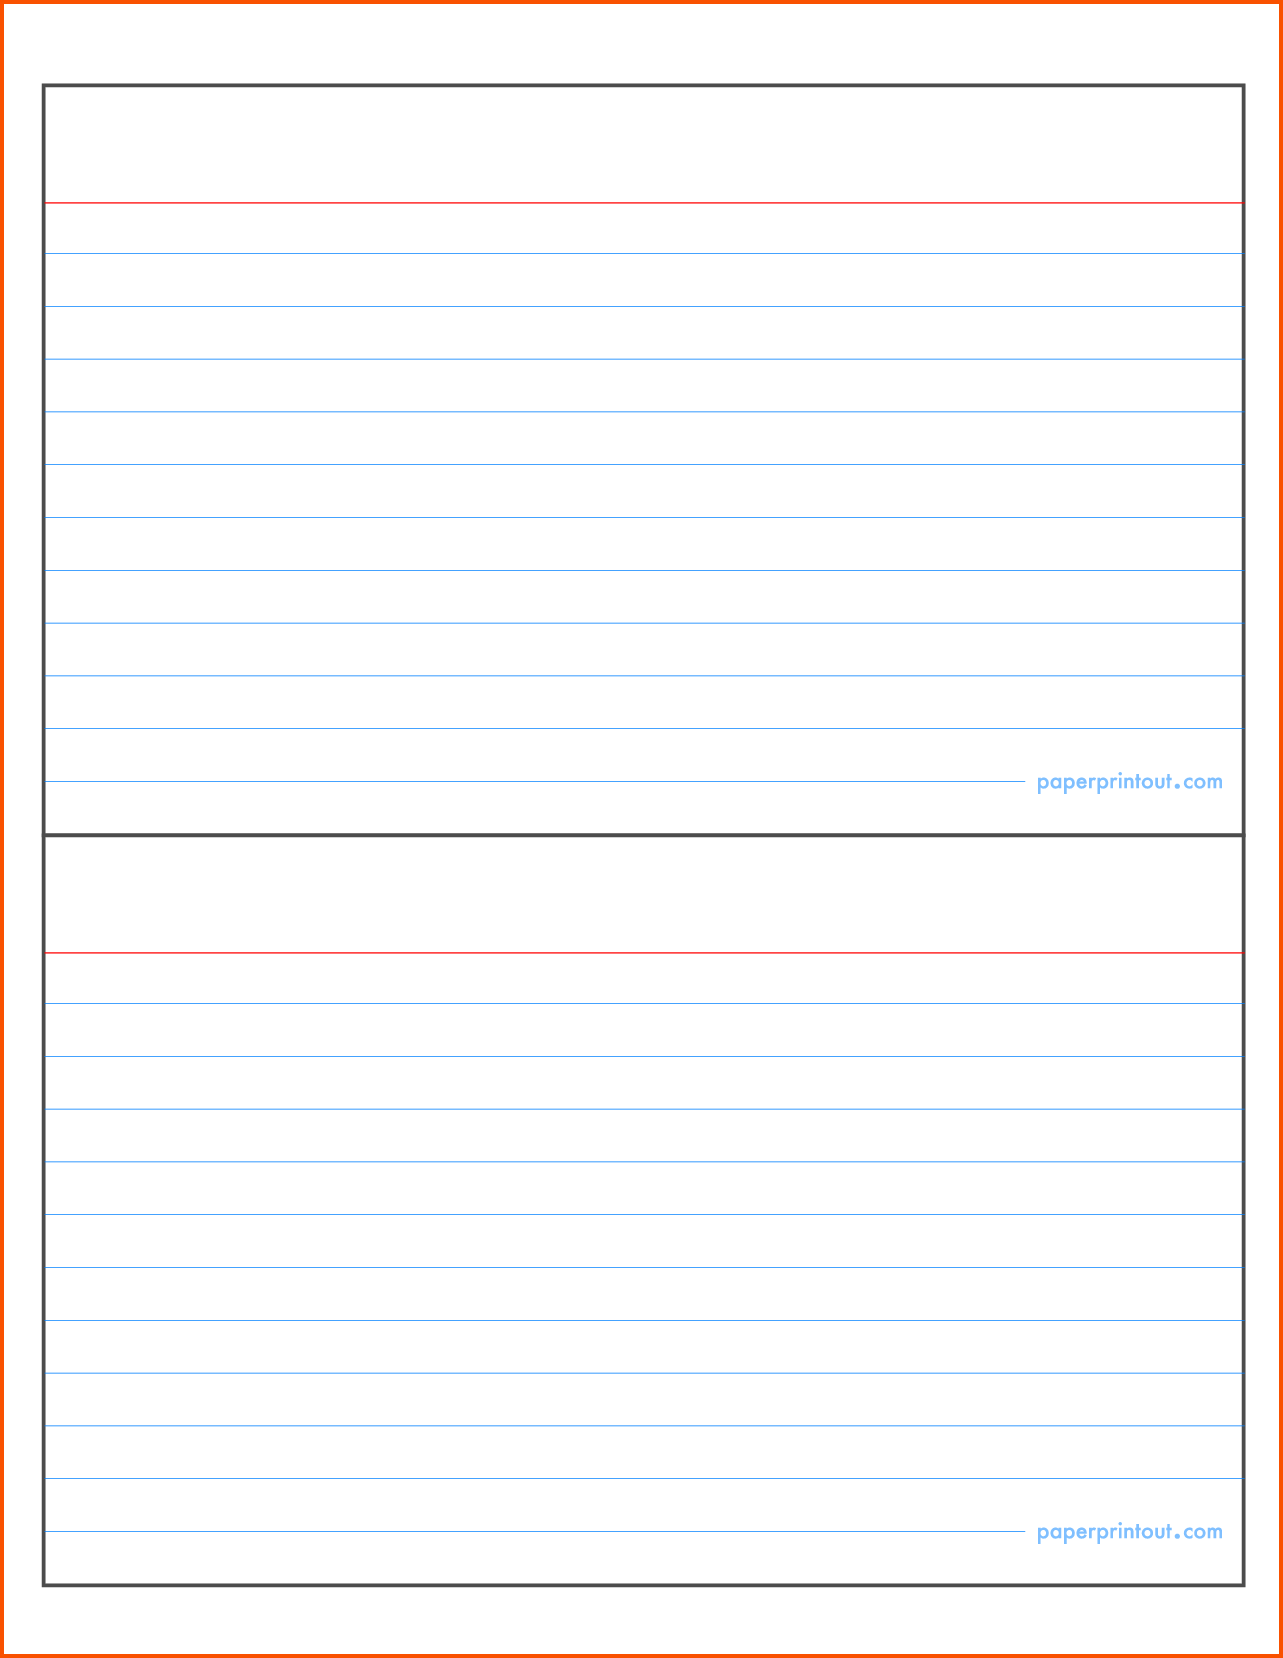 28 Report 4X6 Flashcard Template Microsoft Word for 4X6 Flashcard Template Microsoft Word